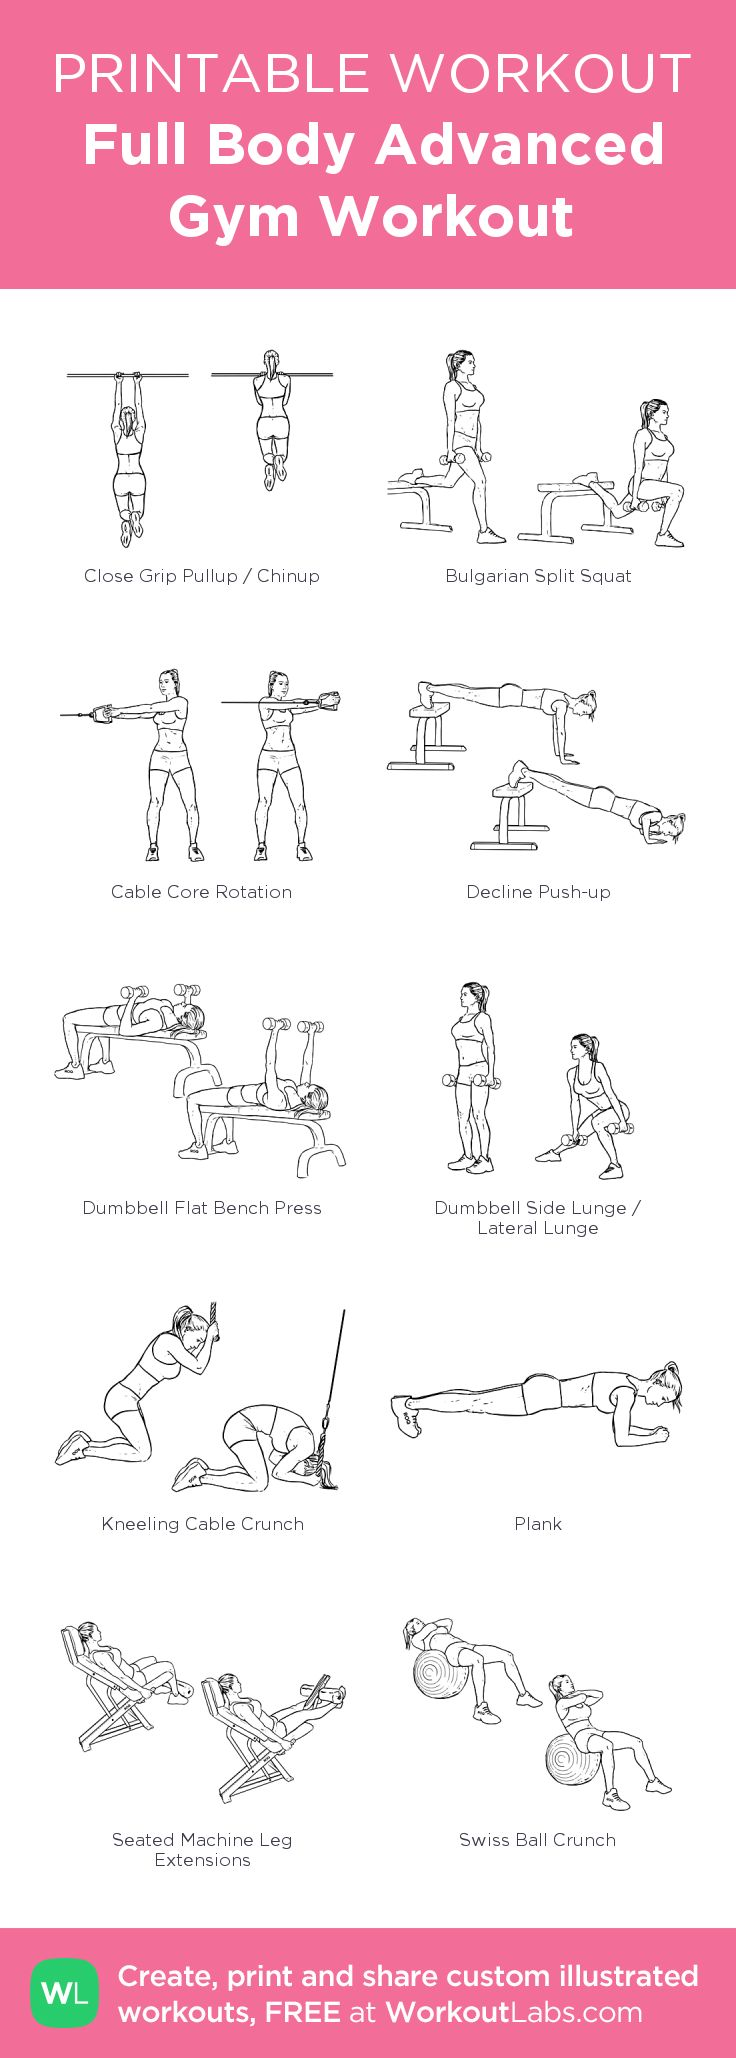 170 best Free Printable Workouts images on Pinterest | Exercise ...